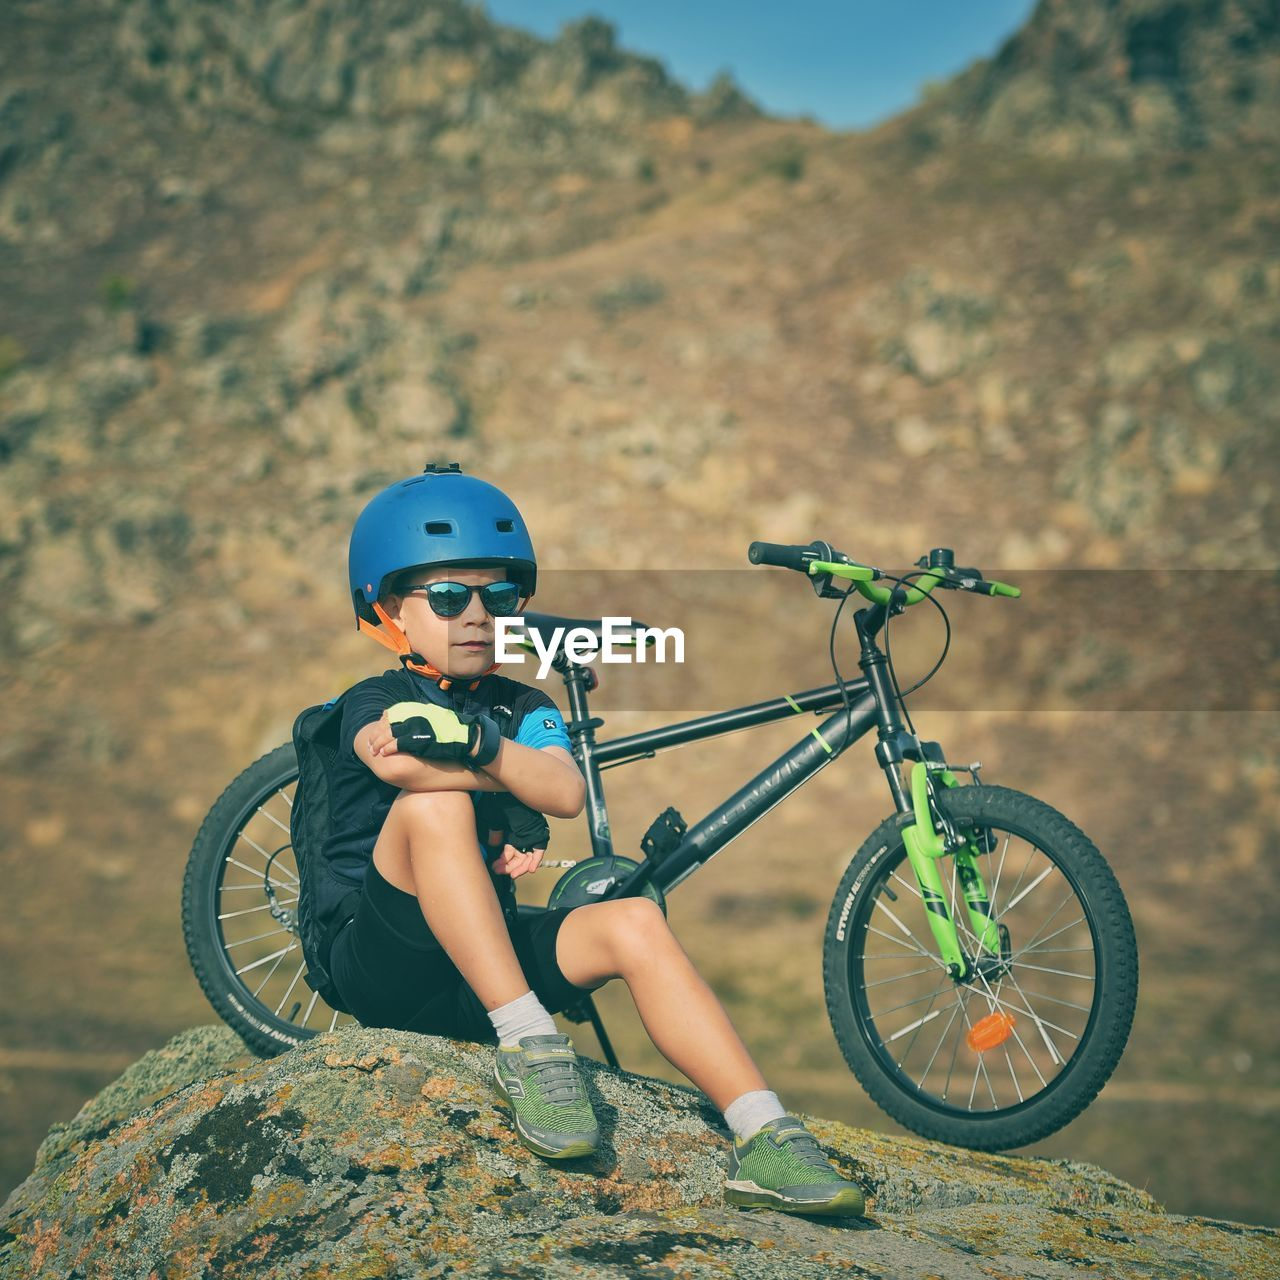 bicycle, transportation, helmet, lifestyles, real people, childhood, leisure activity, one person, land vehicle, headwear, child, mode of transportation, day, men, focus on foreground, riding, ride, nature, land, outdoors